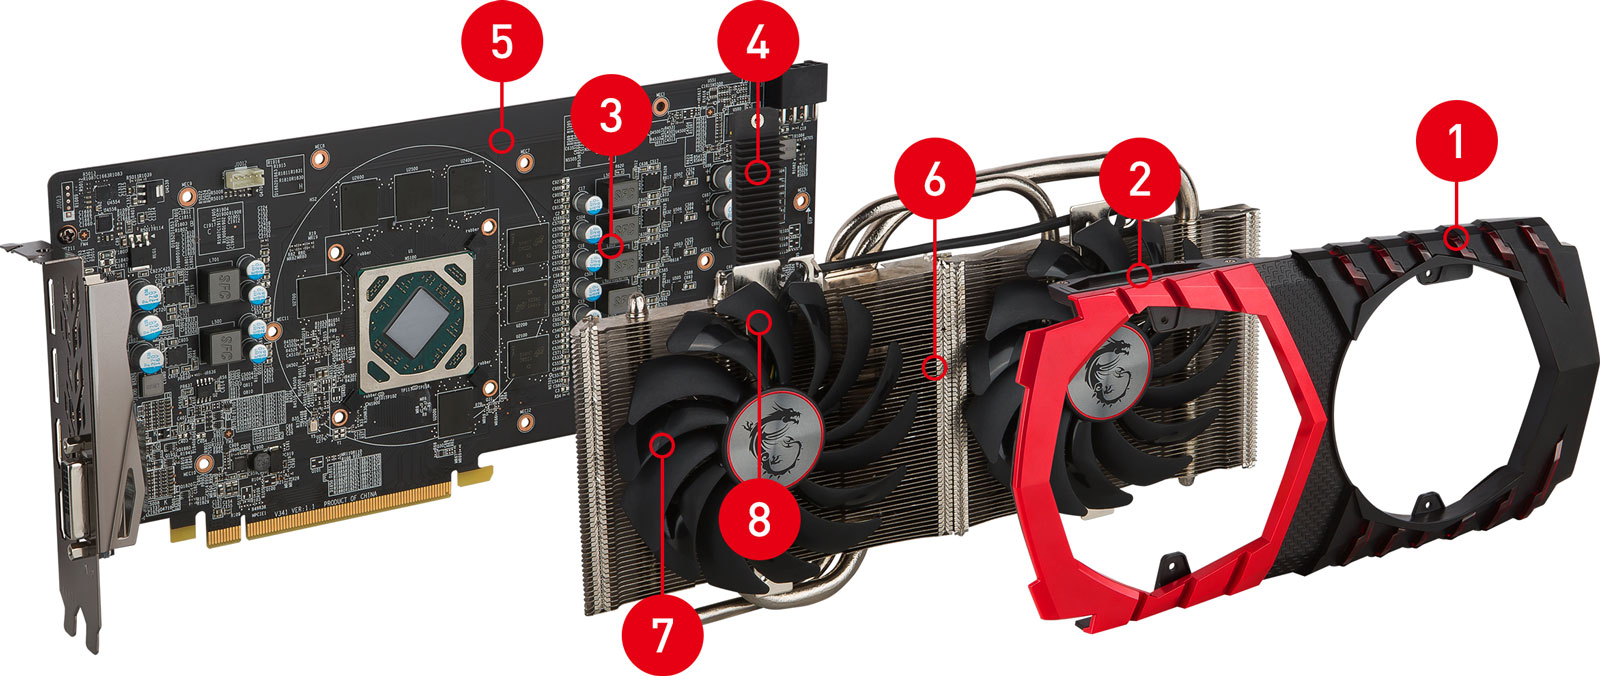 RX470 GAMING X 8G exploded view